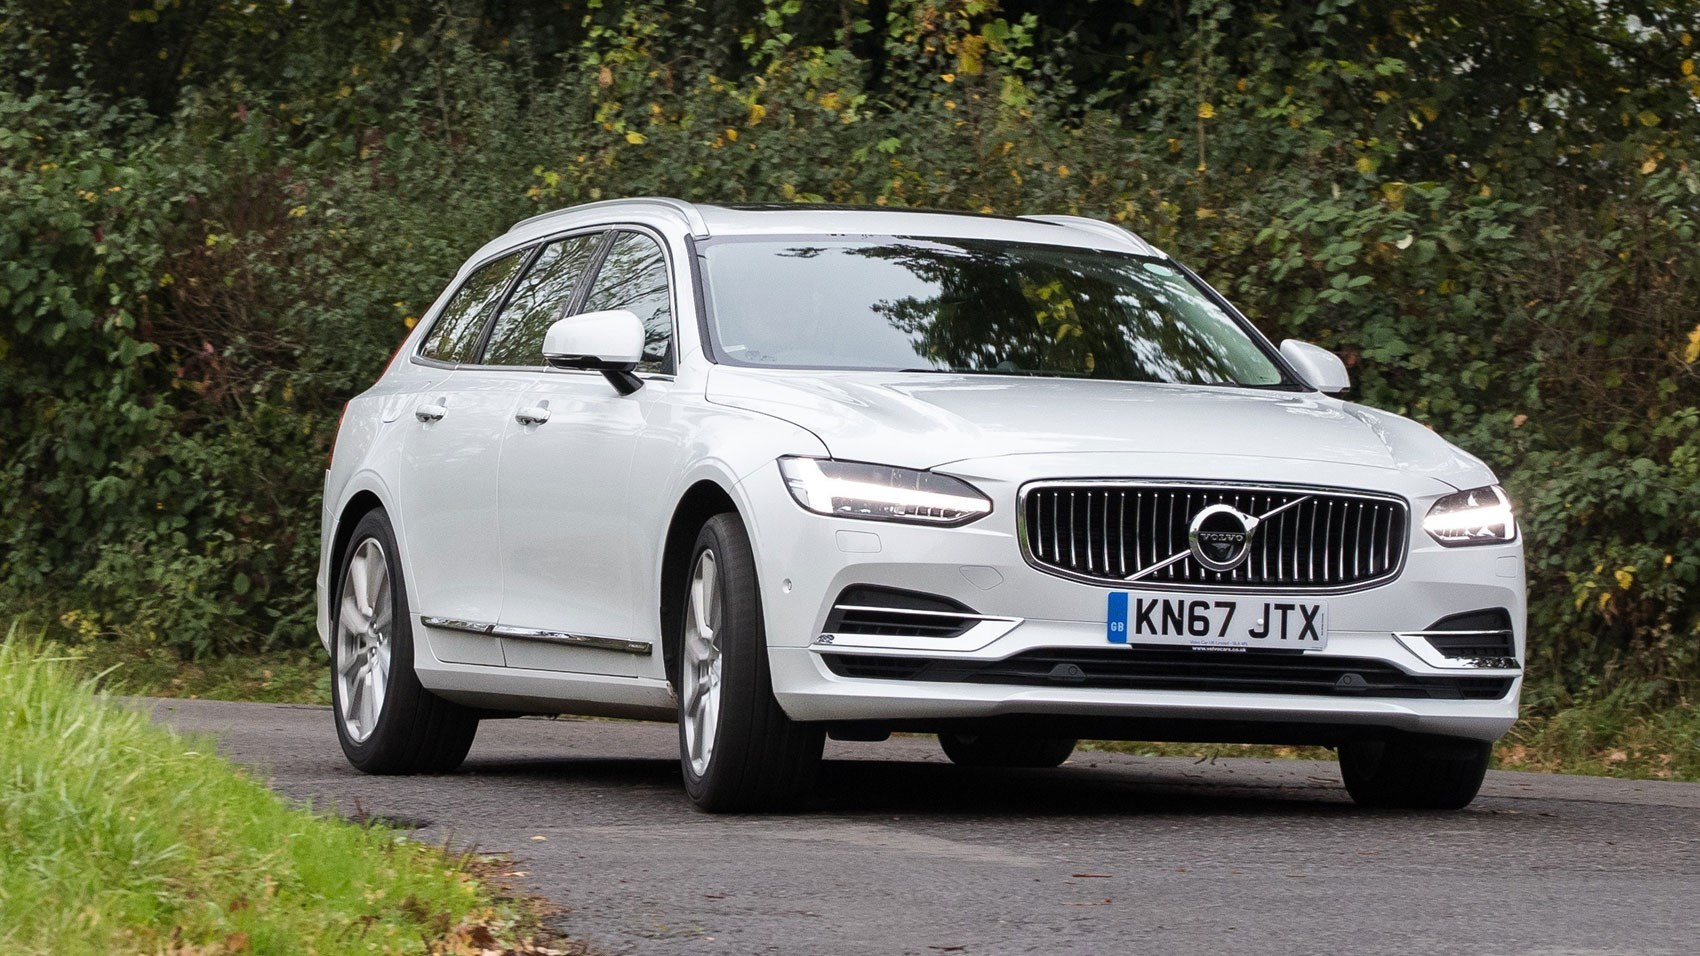 volvo to impose 112mph top speed limit on all cars from 2020